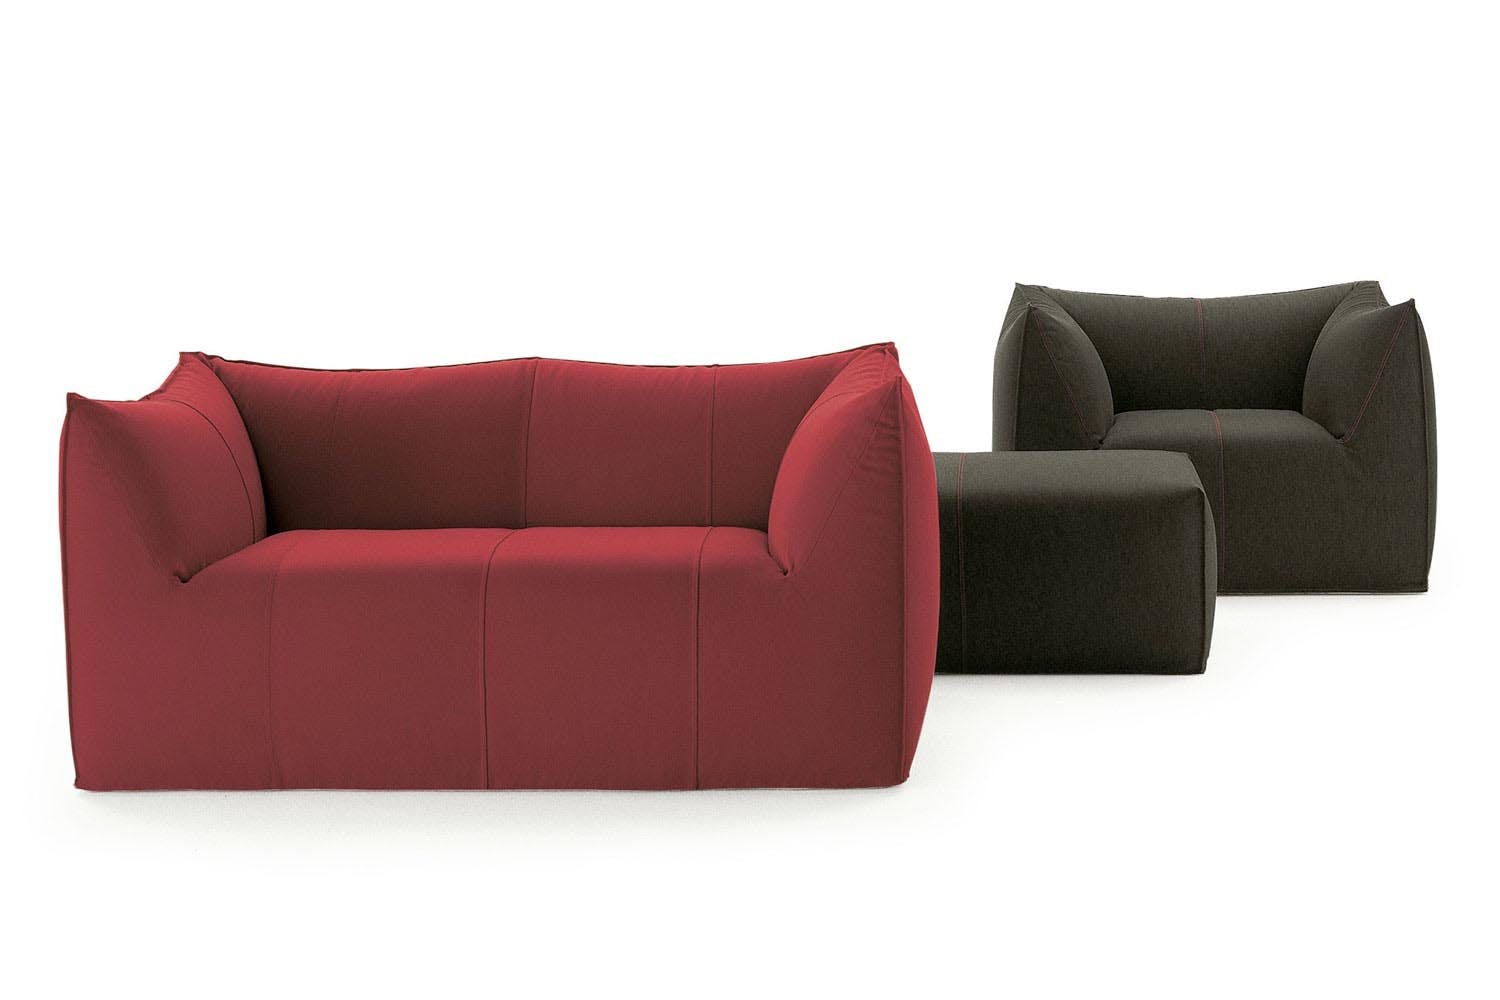 le bambole 39 07 sofa by mario bellini for b b italia. Black Bedroom Furniture Sets. Home Design Ideas